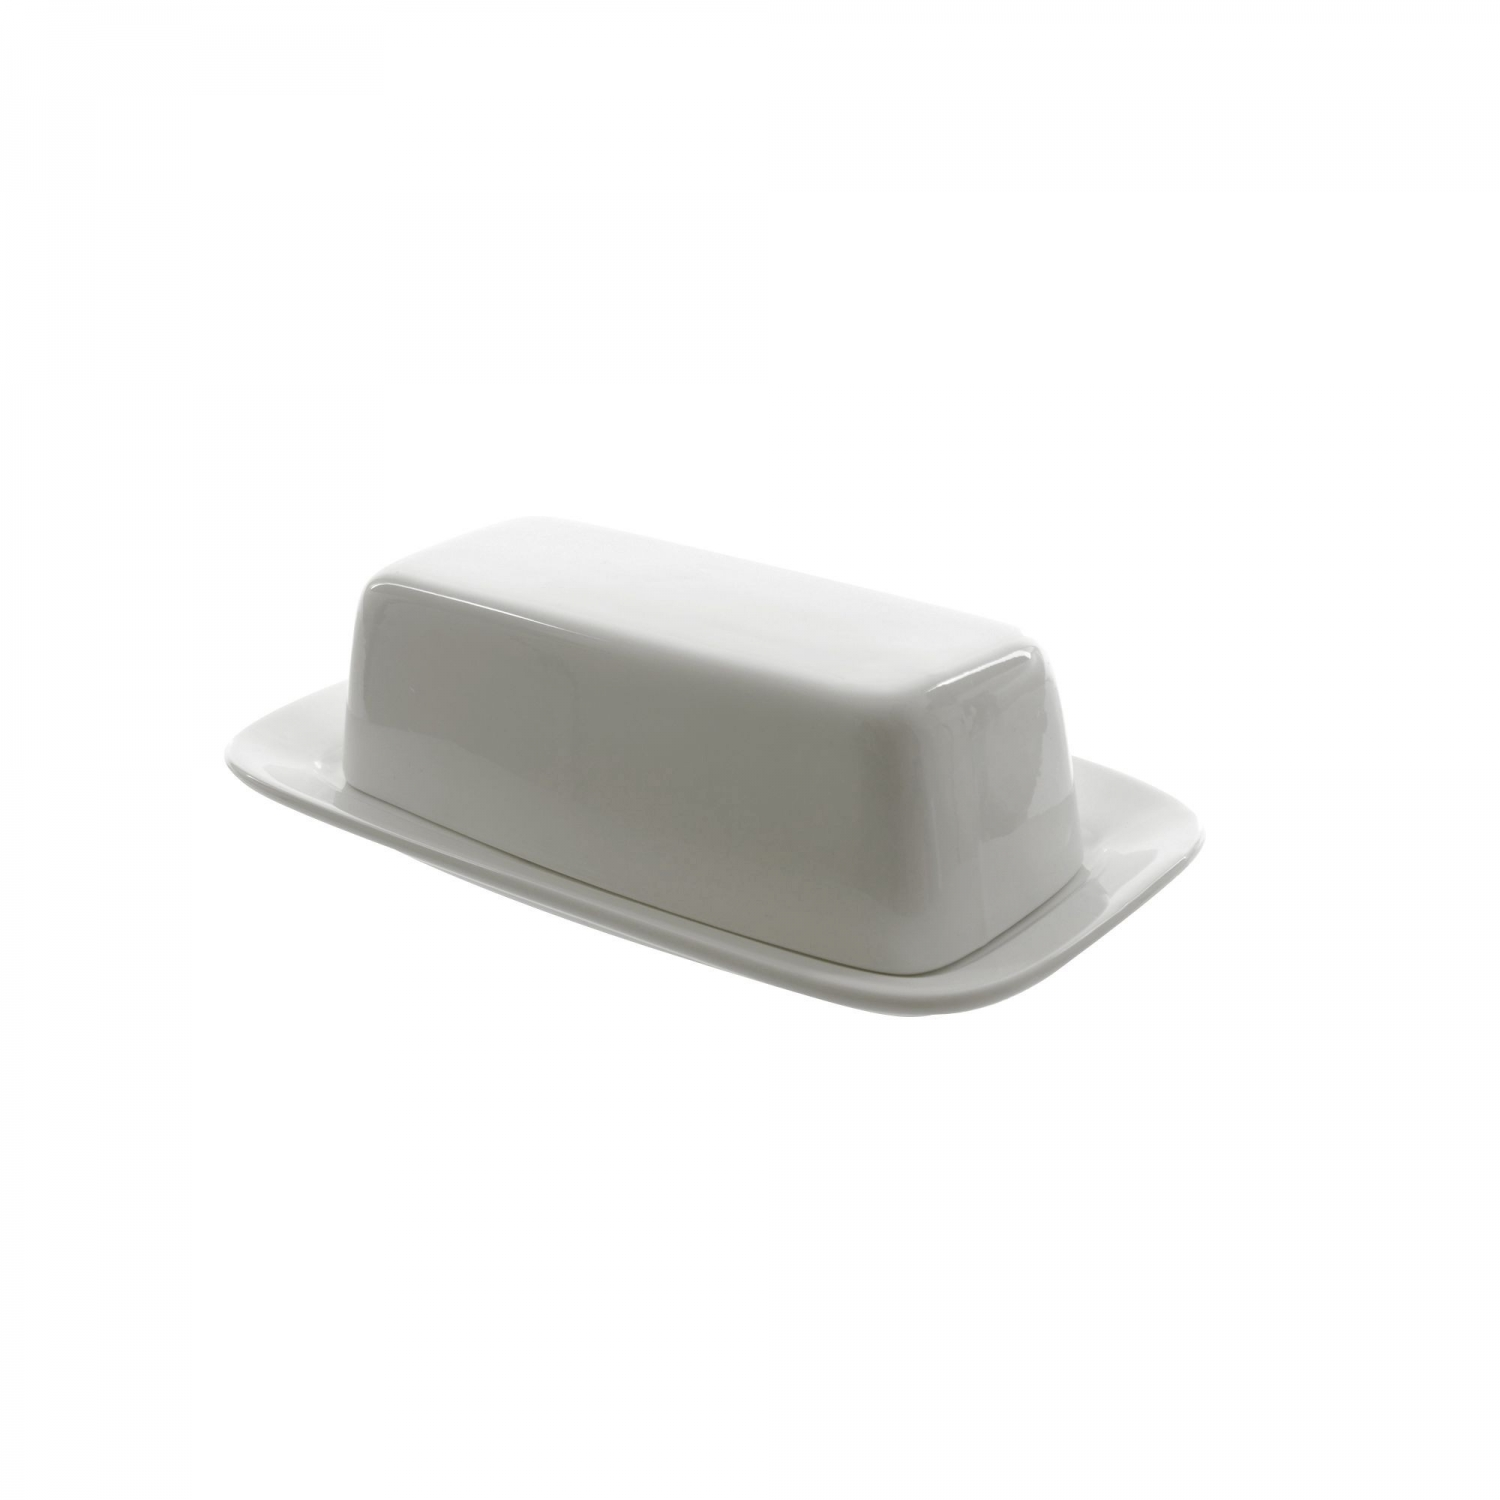 "10 Strawberry Street WTR-34 Whittier Butter Dish with Cover 7-3/4"" x 4-1/8"""